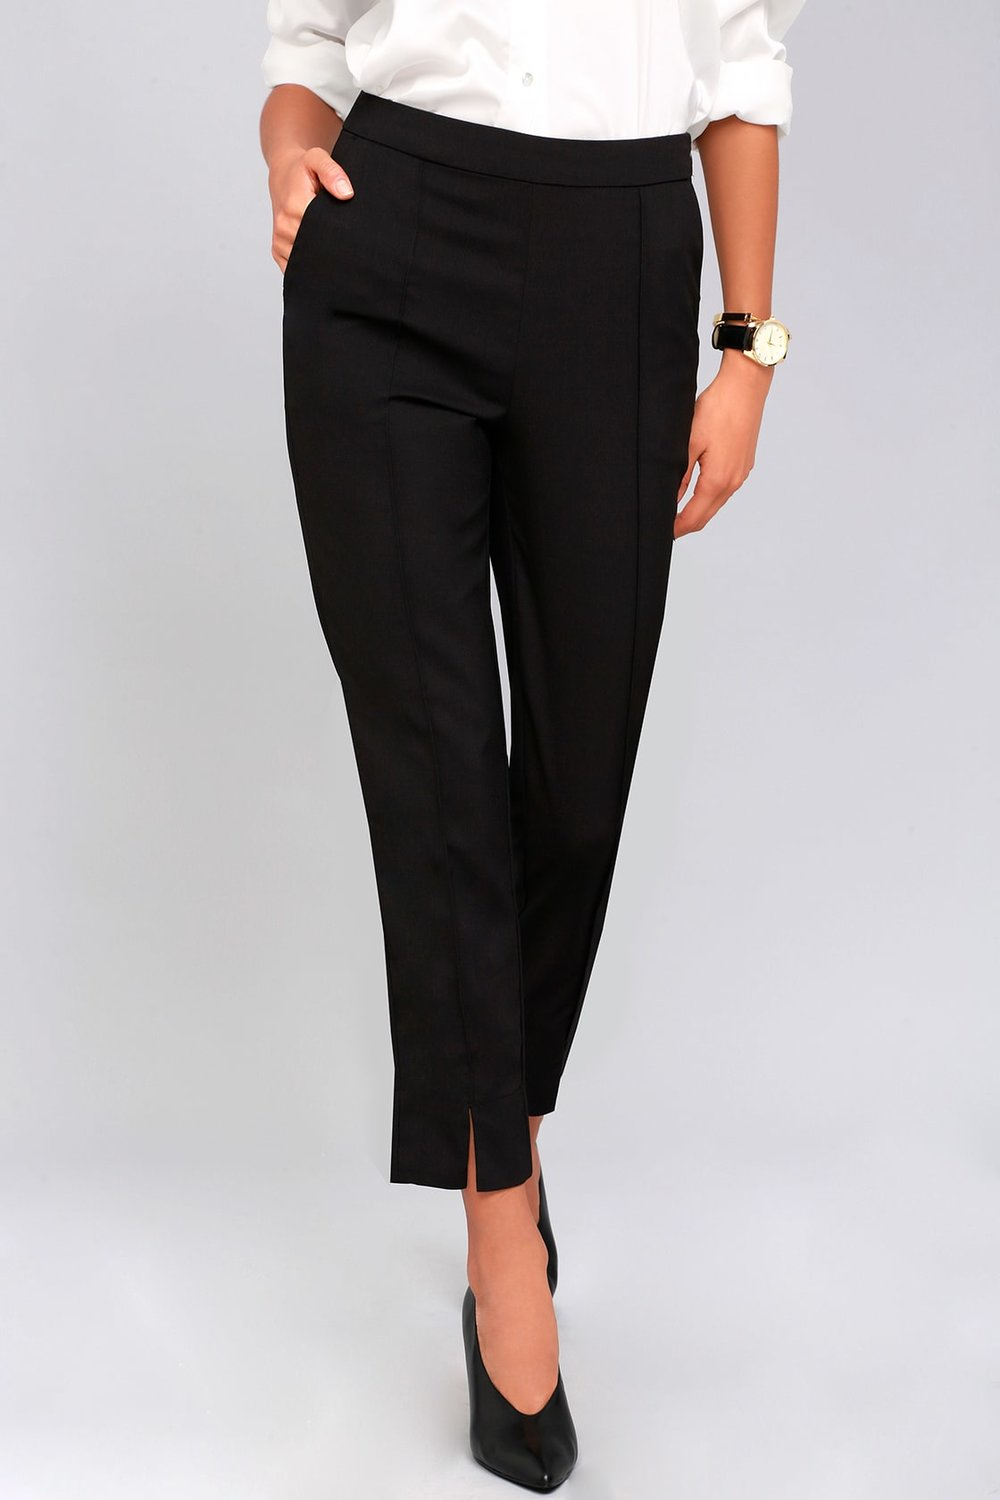 black slit pants.jpg